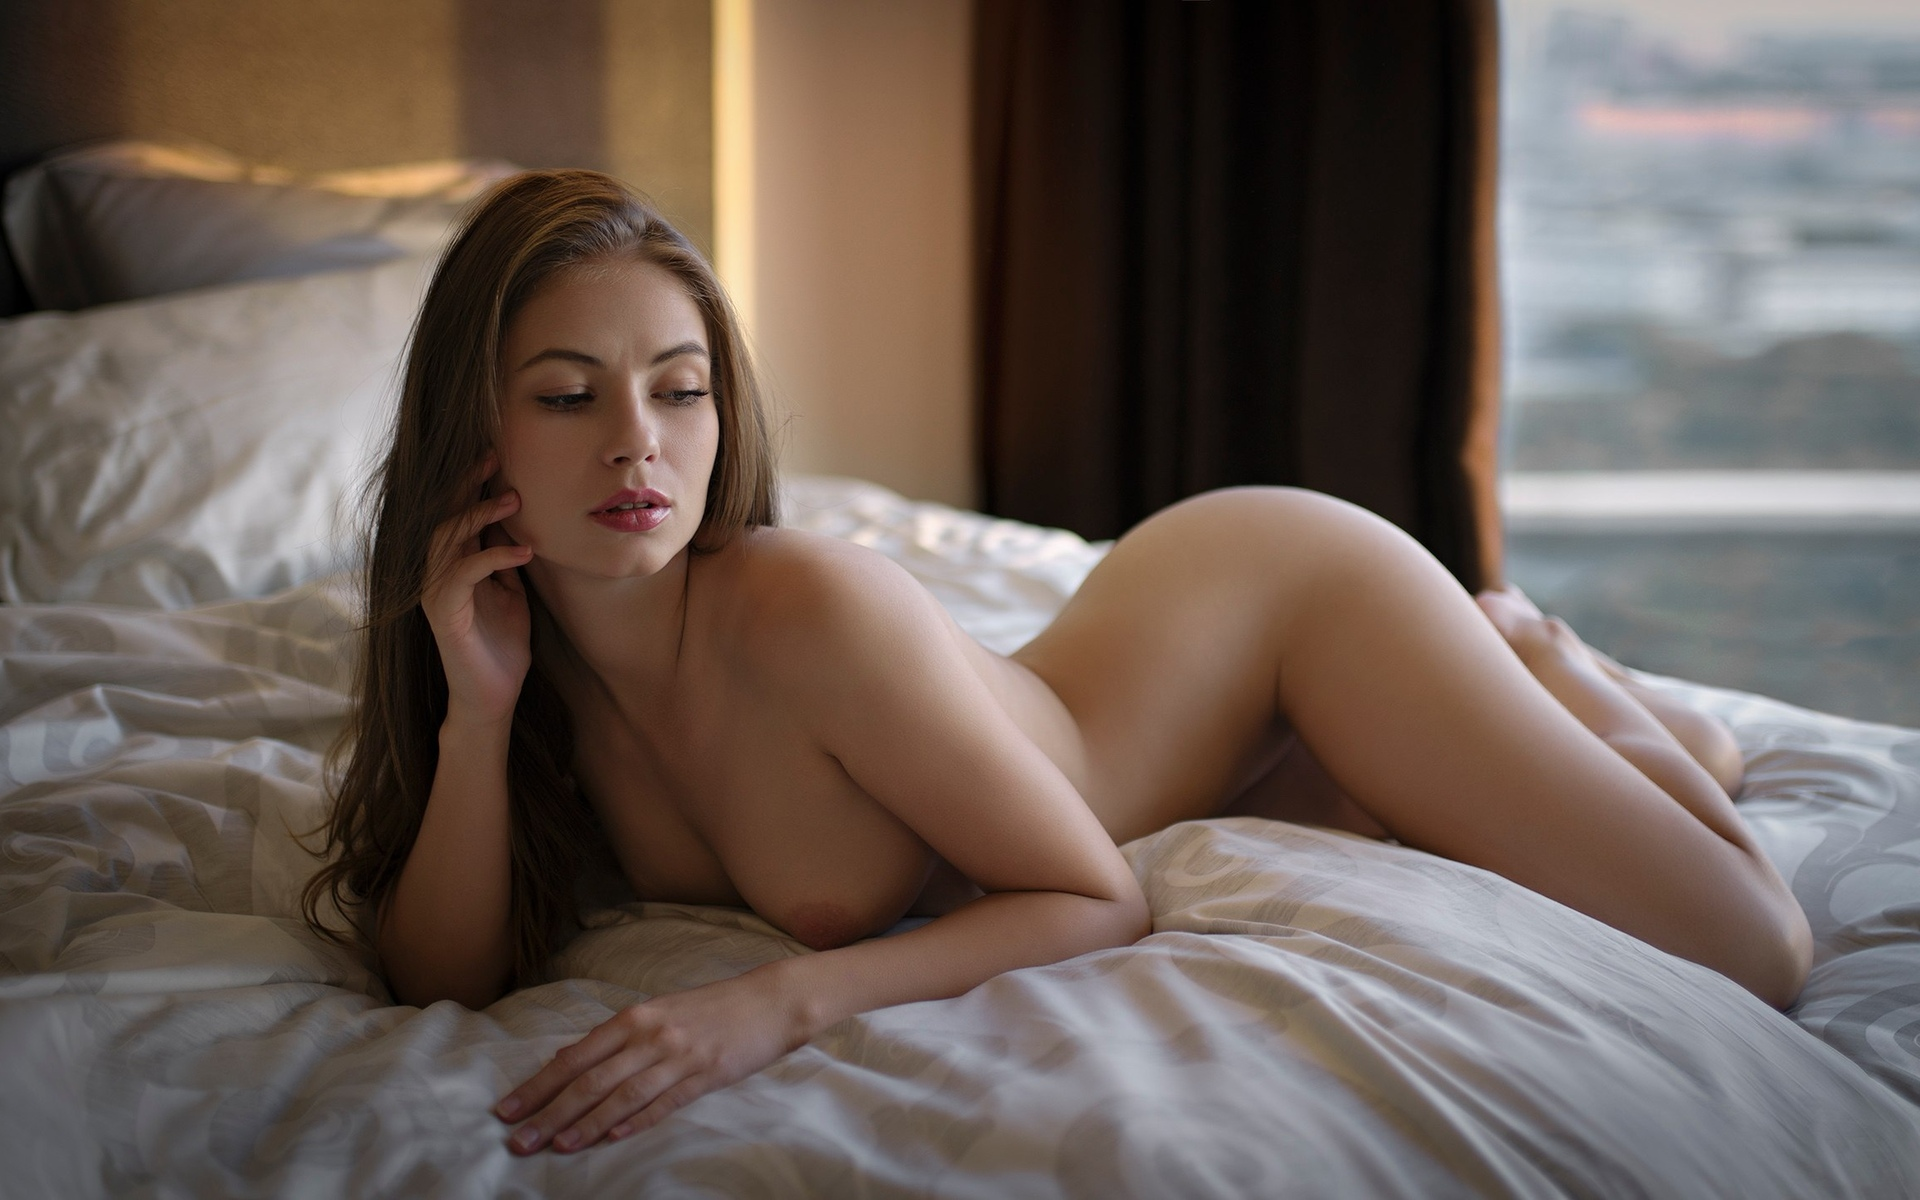 Beautiful Girl With Long Brown Hair Sitting In Bed With White Linens, Covering Her Naked Body With The Blanket, Looking